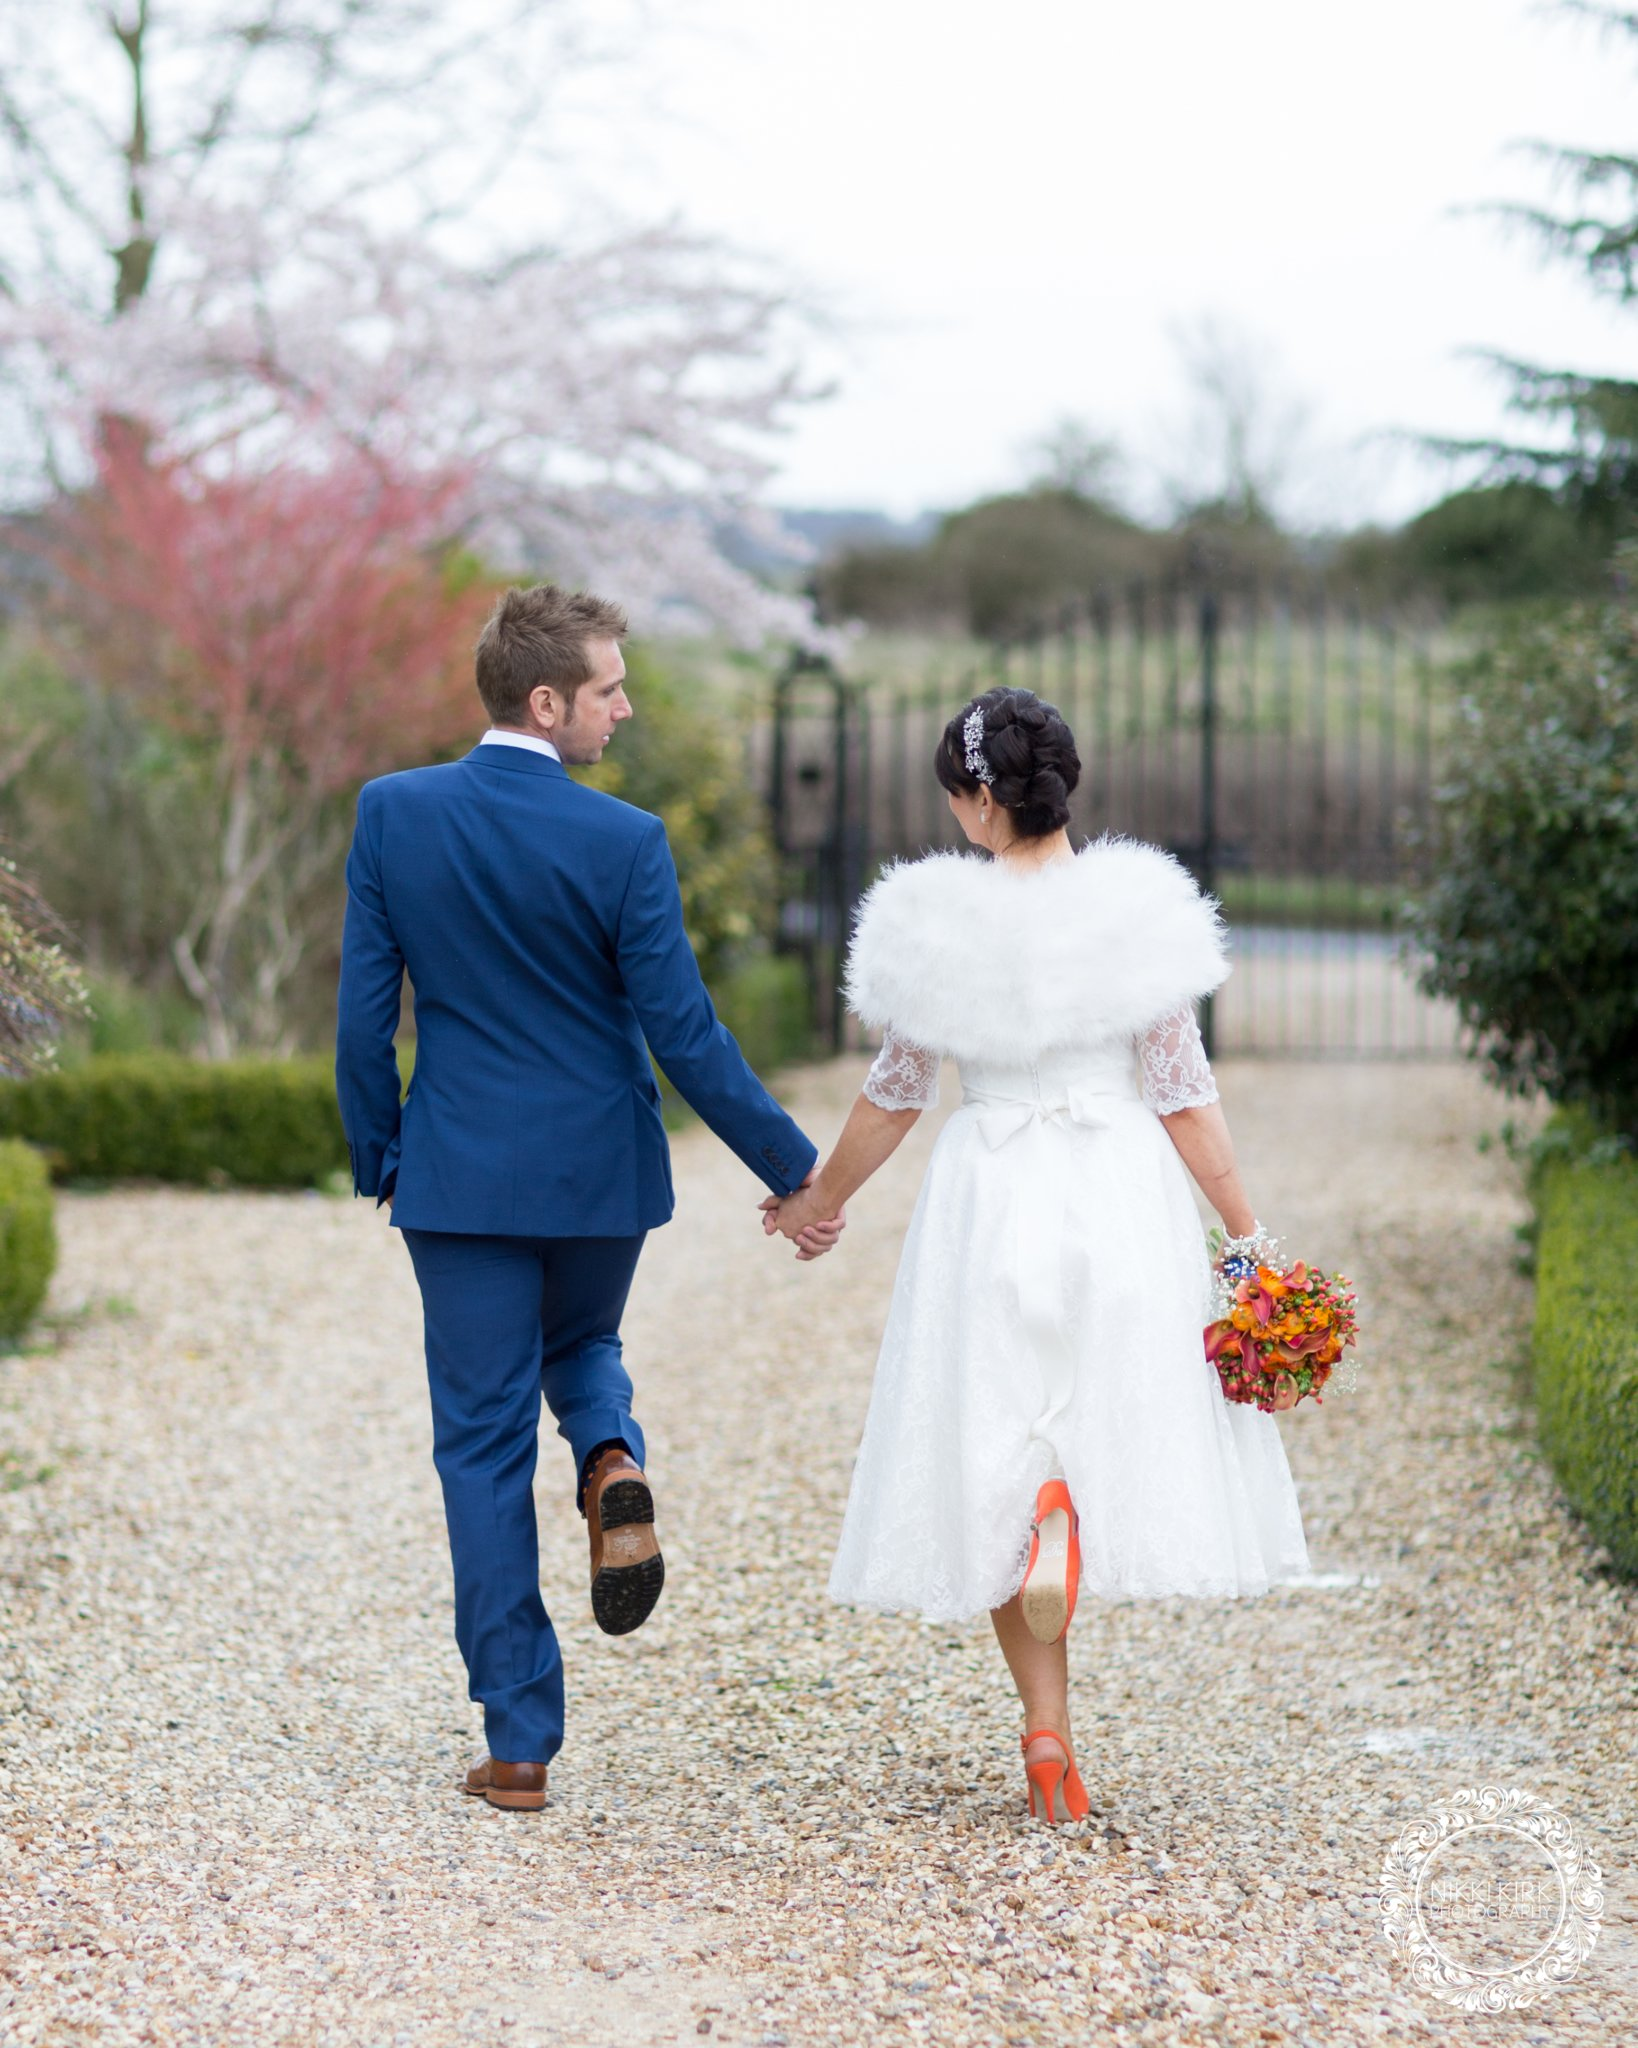 Gloucestershire wedding photographer Nikki Kirk